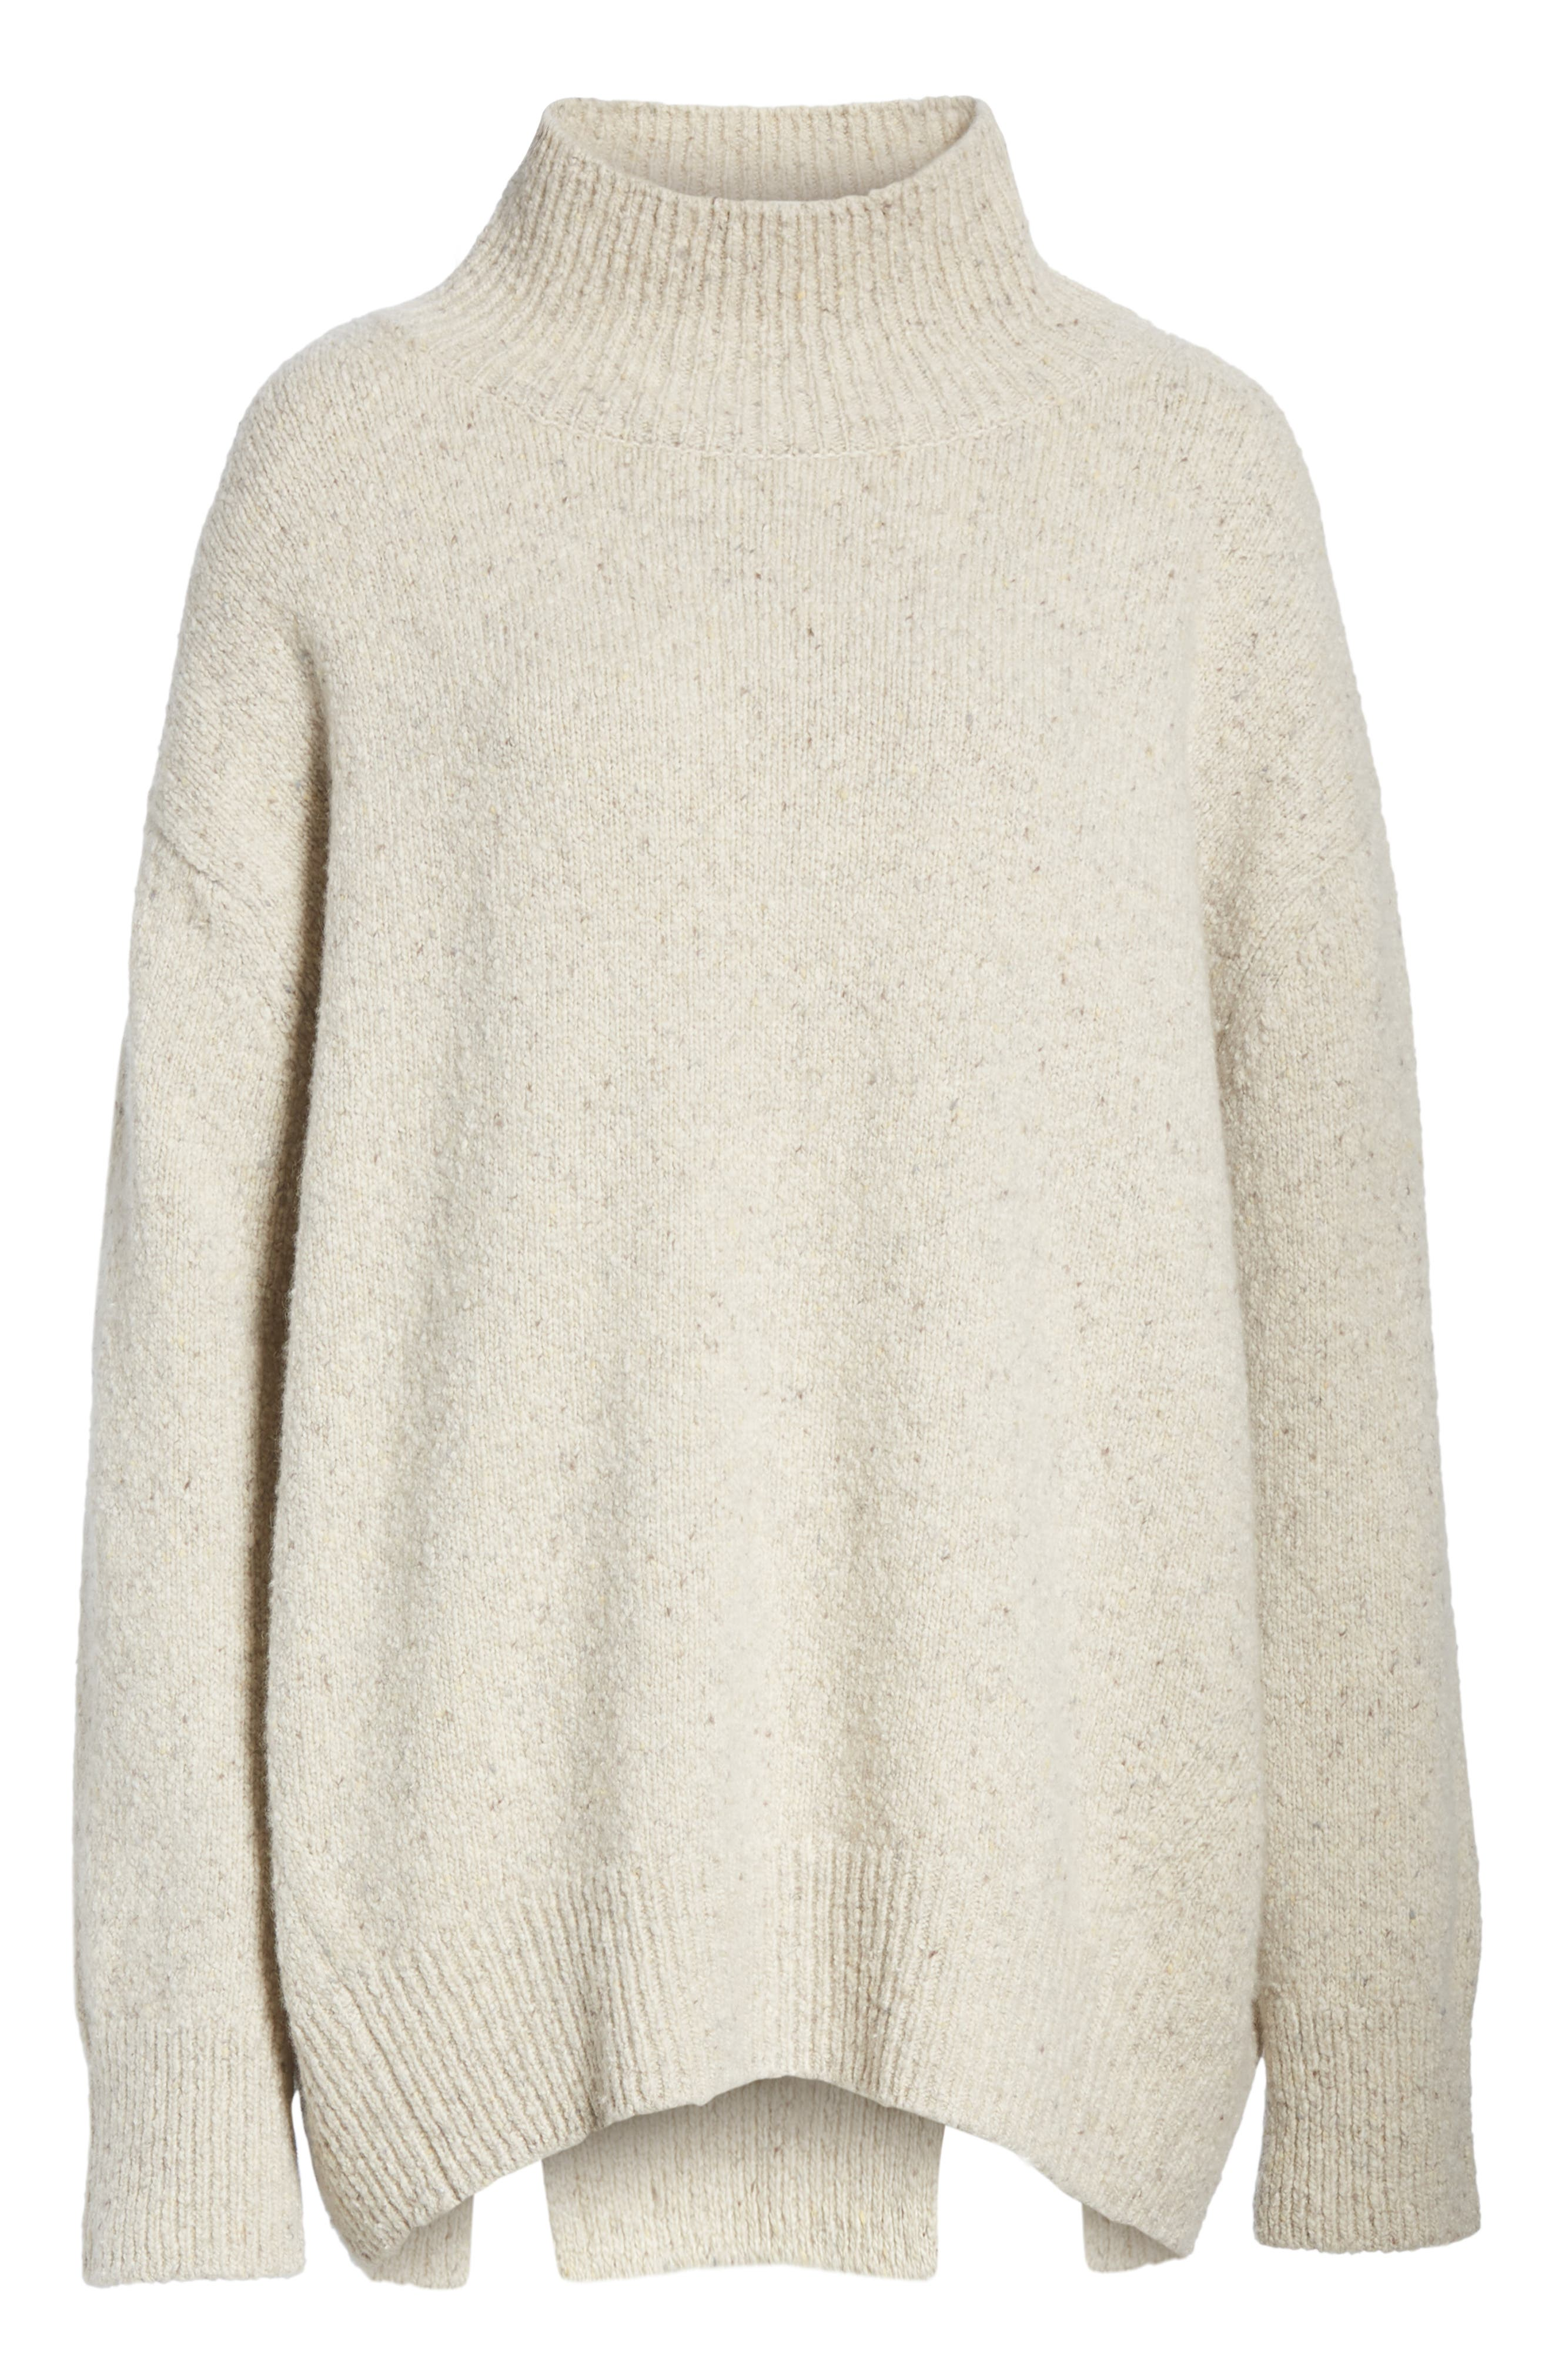 Oversize Cashmere Sweater,                             Alternate thumbnail 6, color,                             BUTTERMILK